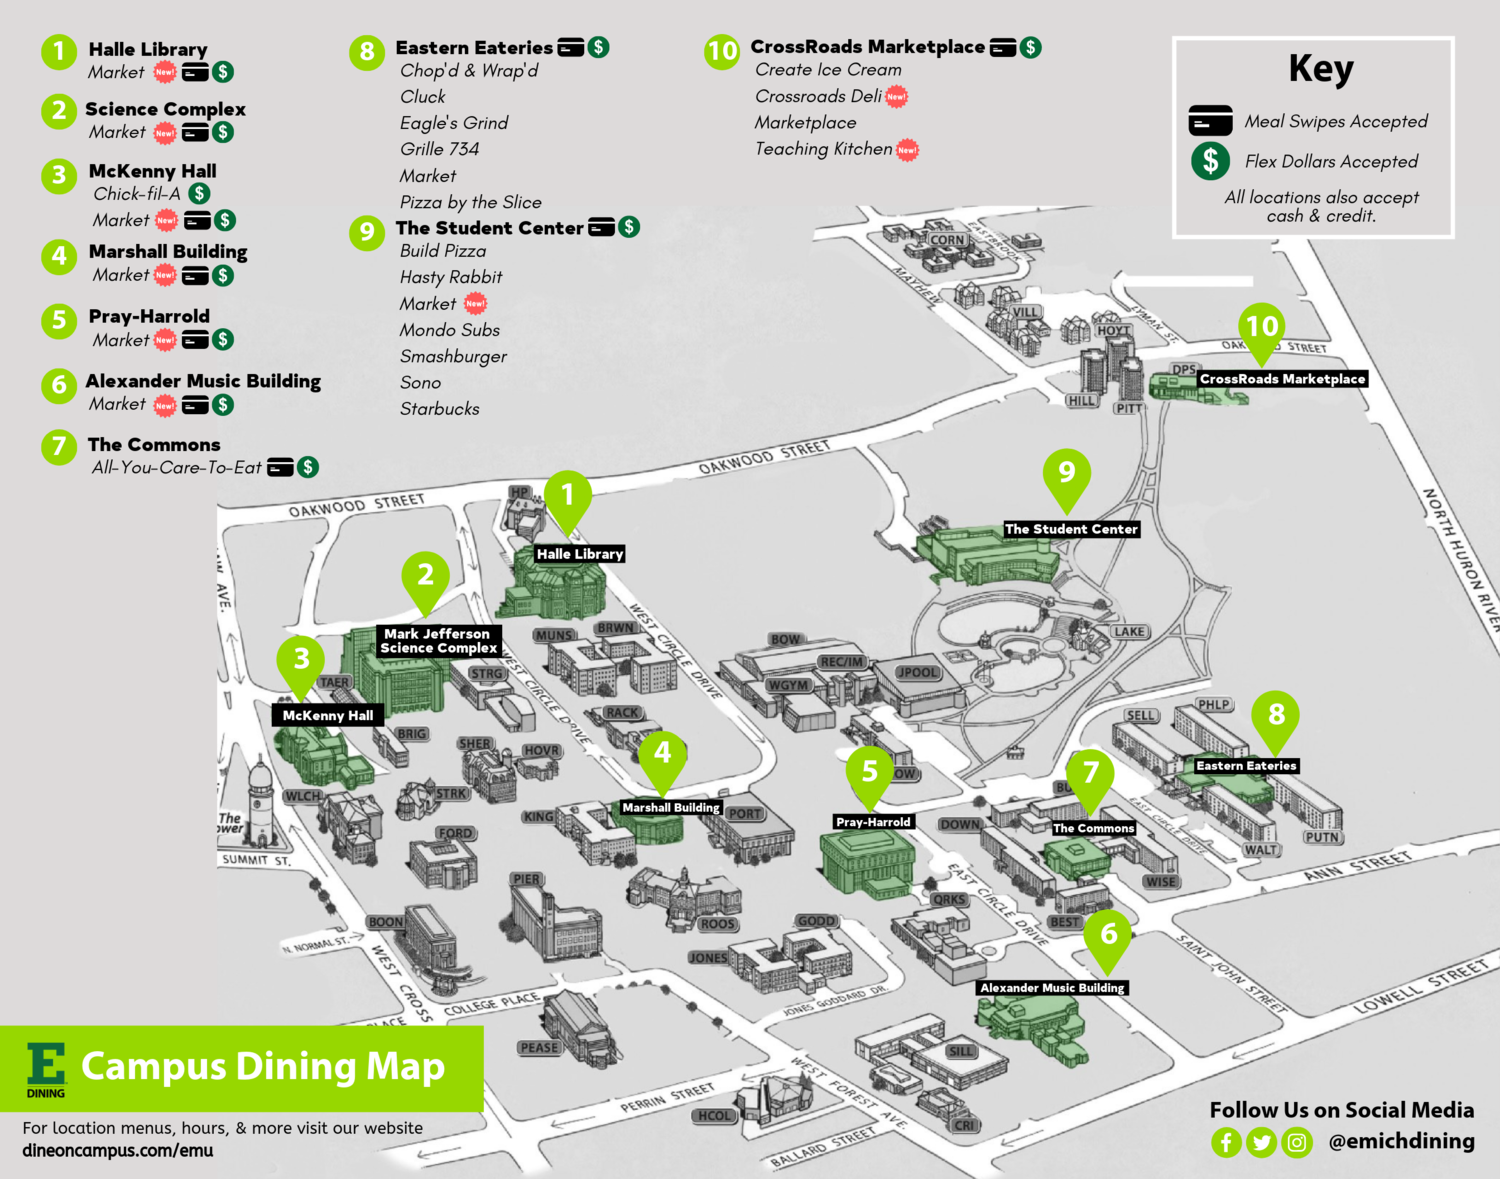 Dine On Campus at Eastern Michigan University || Where to Eat Emu Campus Map on moa campus map, hunter campus map, eastern washington university campus map, oakland u campus map, cow campus map, u of m campus map, ash campus map, eden campus map, eastern oregon university campus map, reebok campus map, eastern mennonite university campus map, university of richmond campus map, eastern university pa campus map, crane campus map, university of mary washington campus map, wmu campus map, wayne state campus map, tri-c west campus map, east carolina university campus map, delta college michigan campus map,